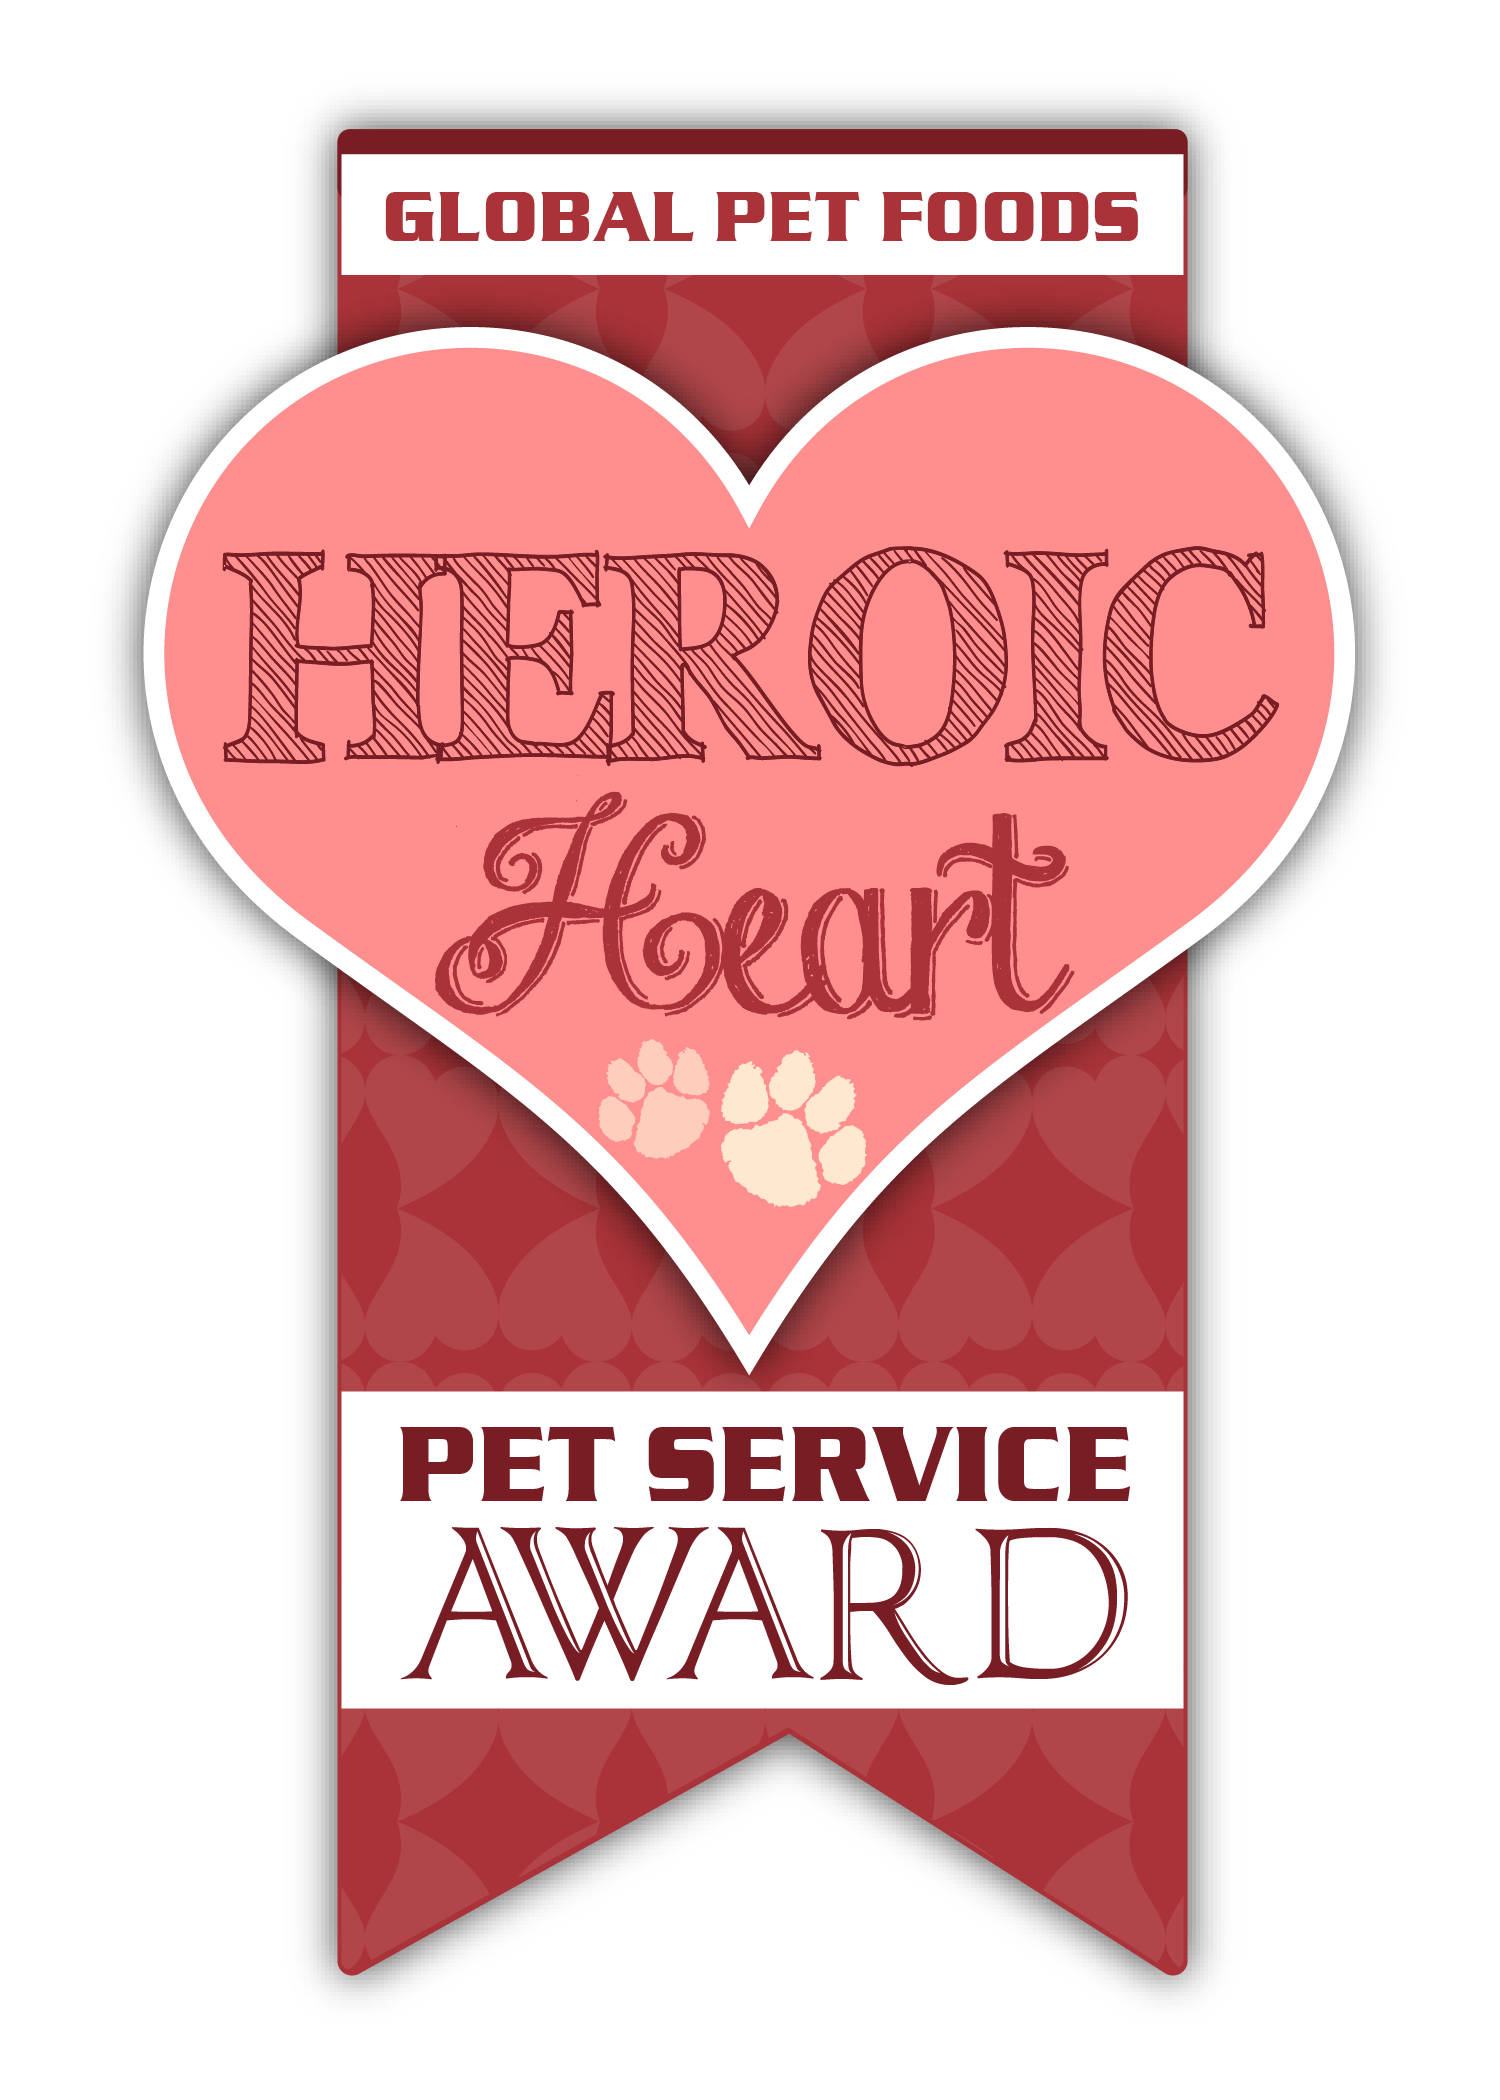 Global Pet Foods Is Asking People Across Canada To Nominate Their Pet Hero Four Amazing Volunteers Will Be Awarded Service Animal Food Animals Service Awards